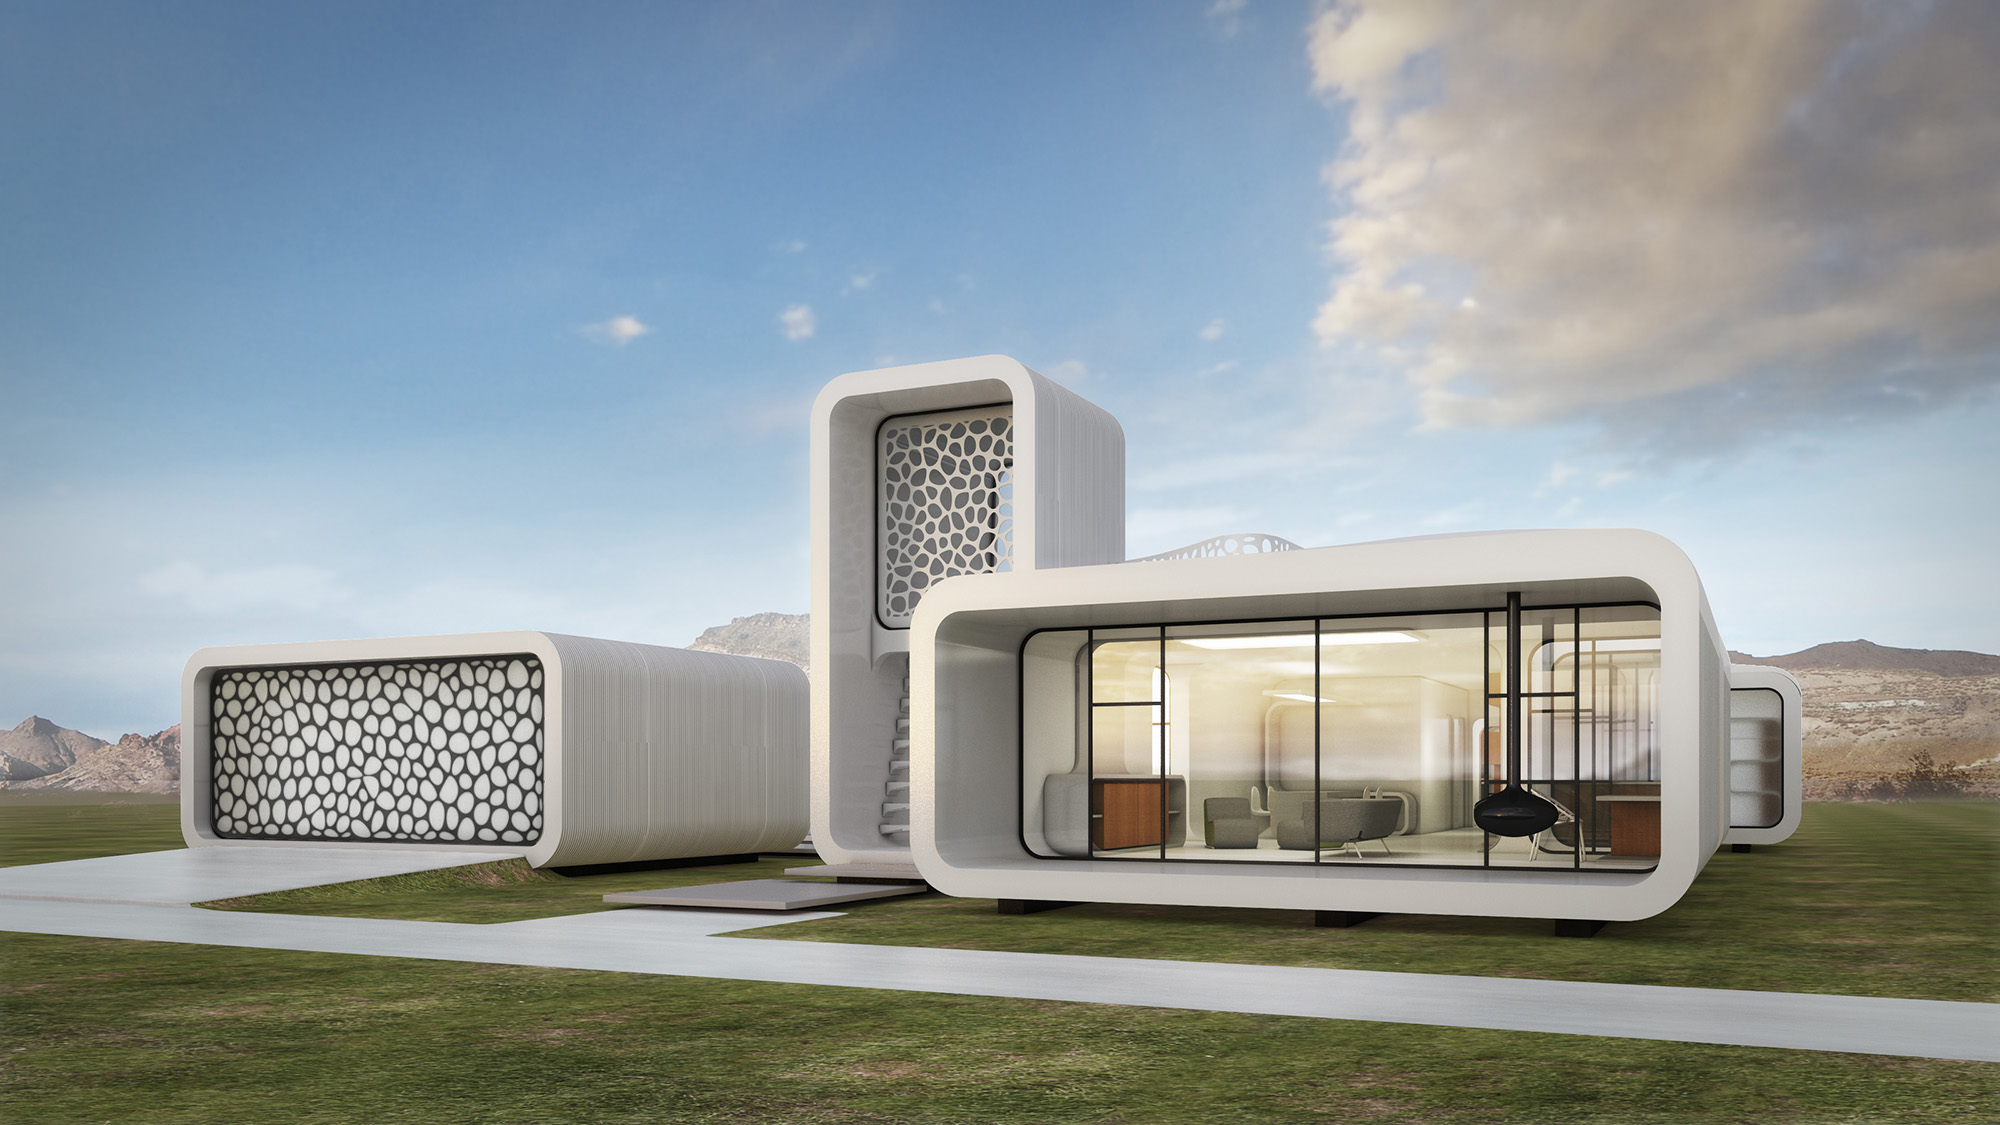 Dubai plans to 3D print 25% of buildings by 2030